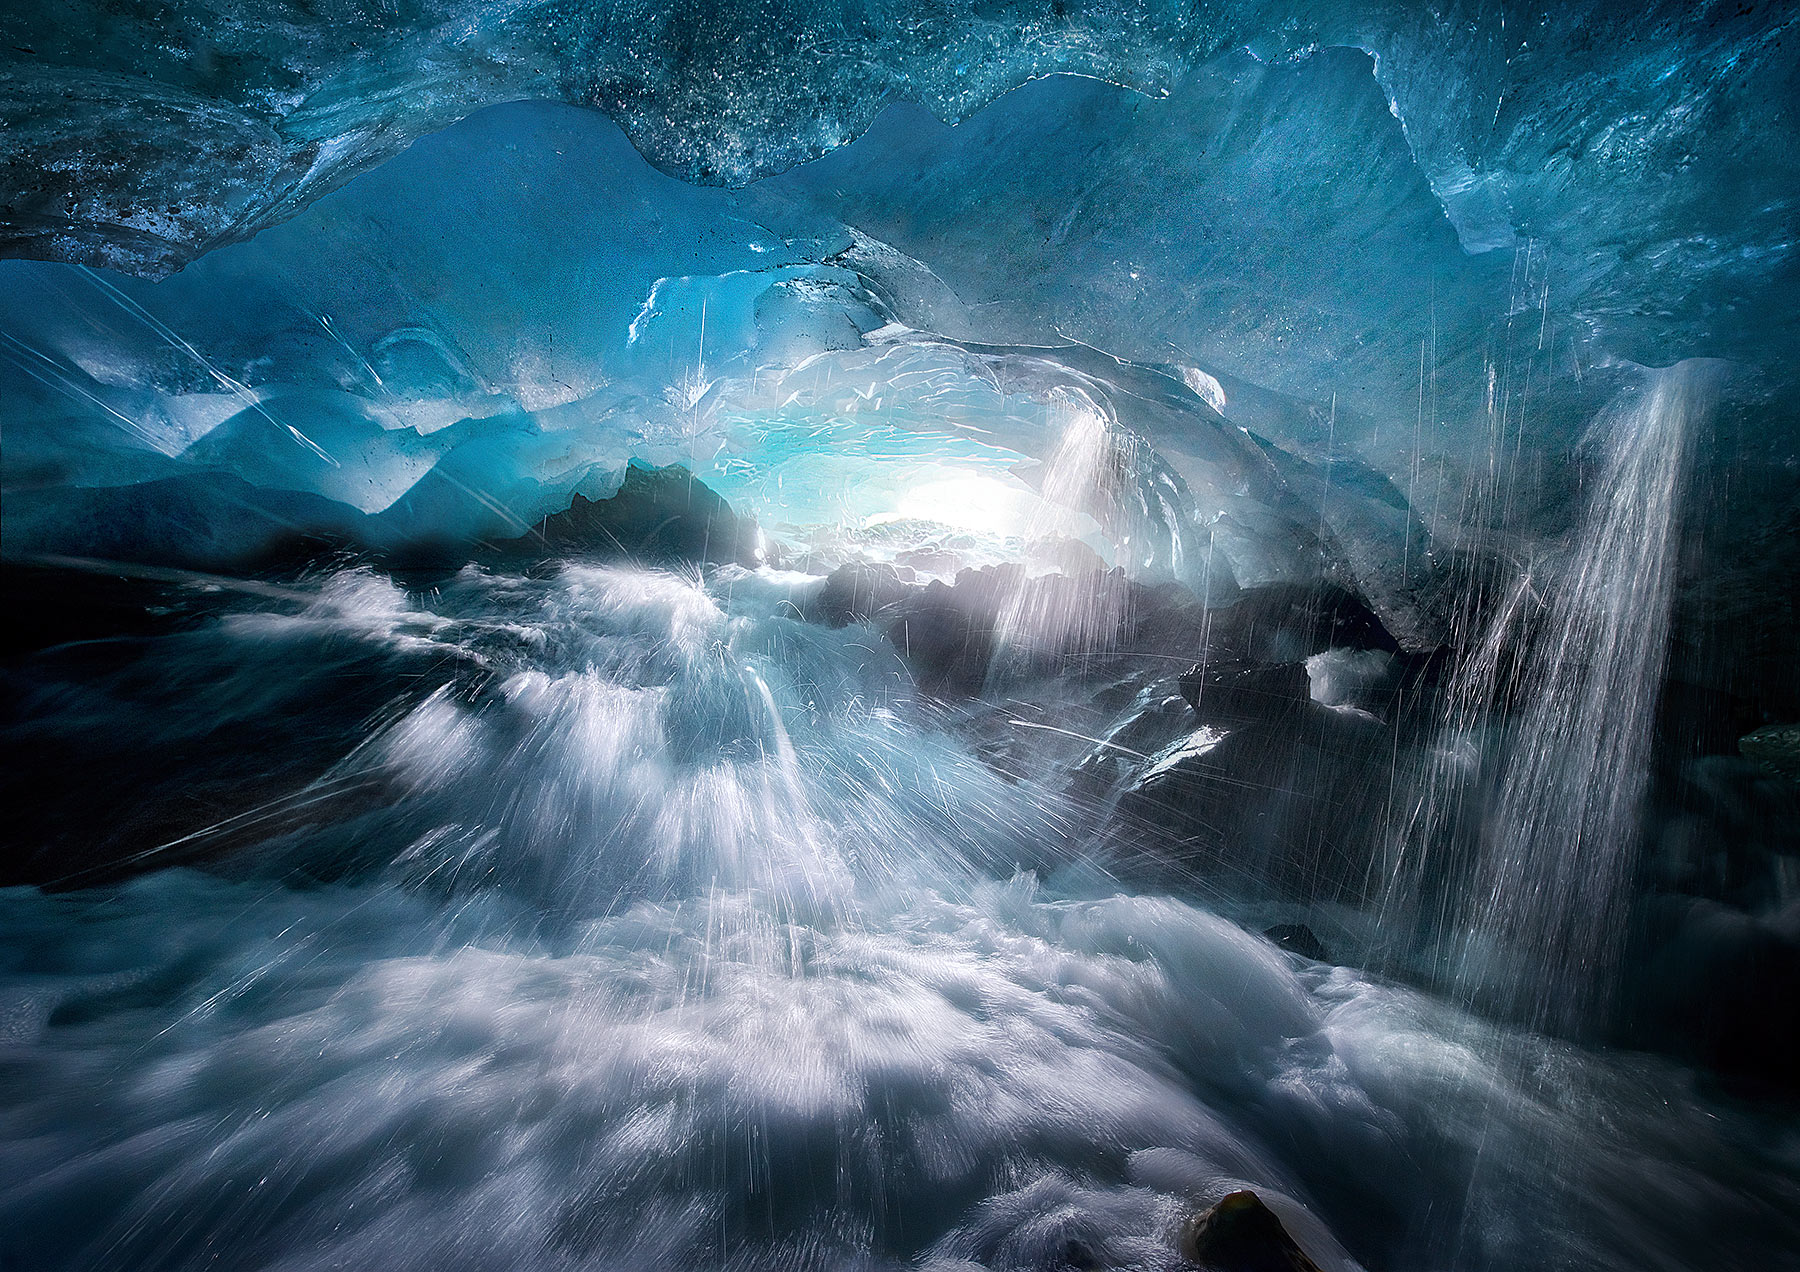 Ice, Cave, Alaska, Boundary Range, stream, splash, blue, cold, photo